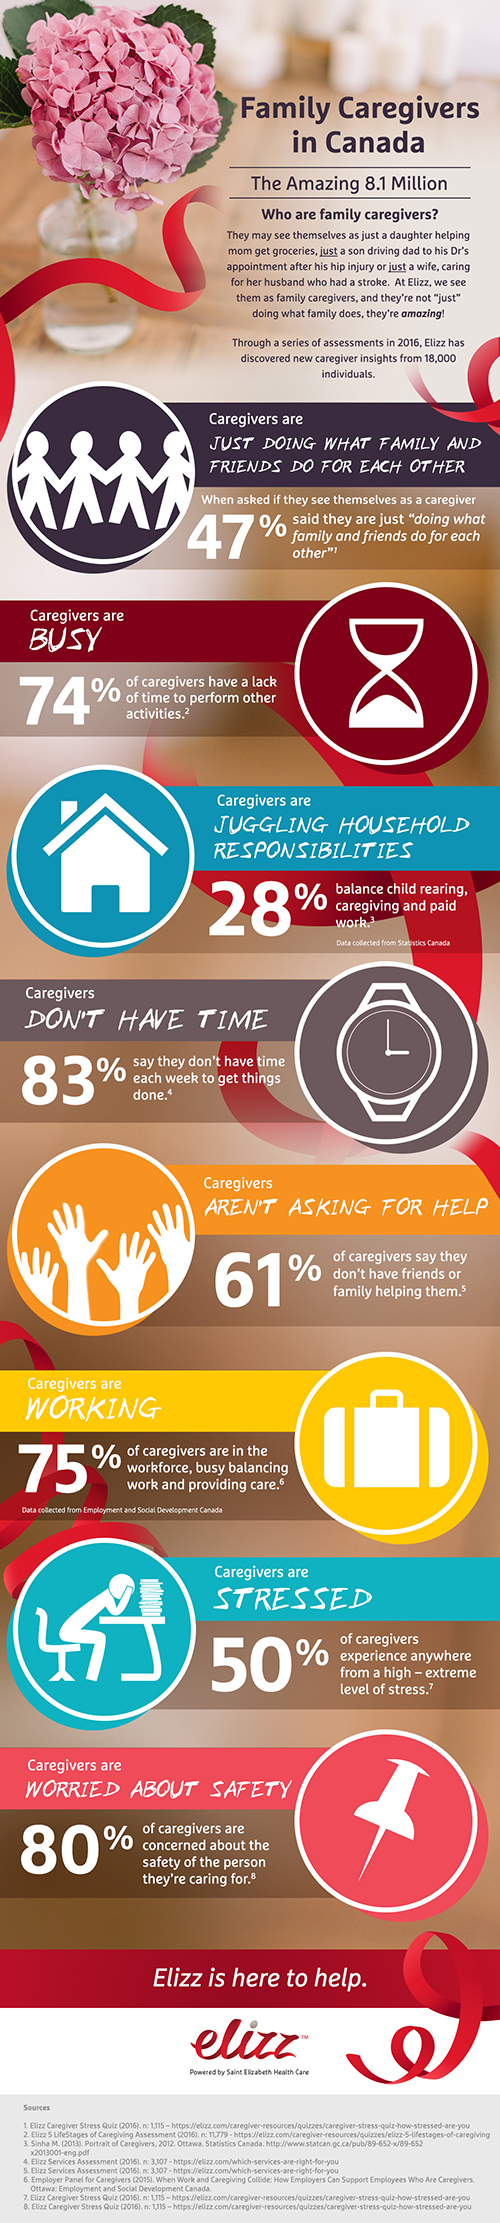 National Caregiver Day infographic